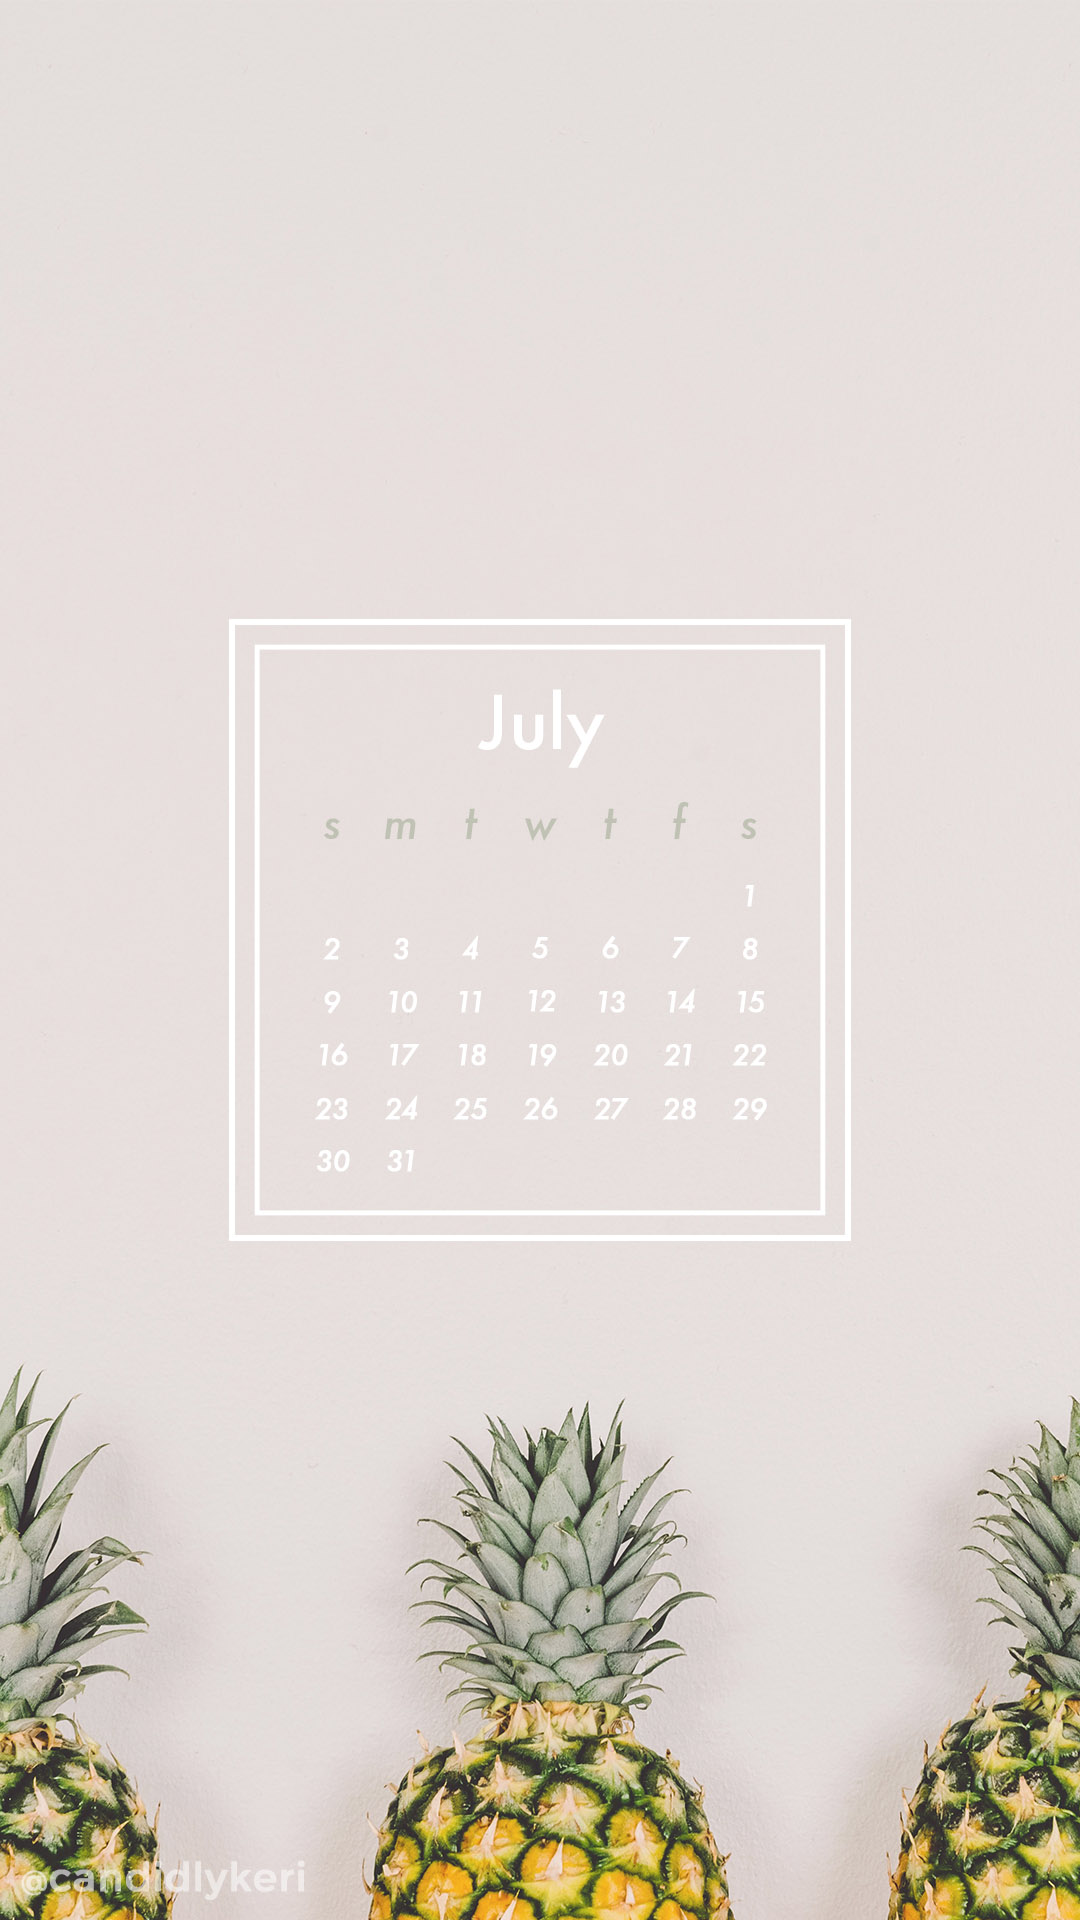 Pineapple-fun-geo-shape-summer-July-calendar-you-can-download-for-free-on-the-blog-F-wallpaper-wpc9008490